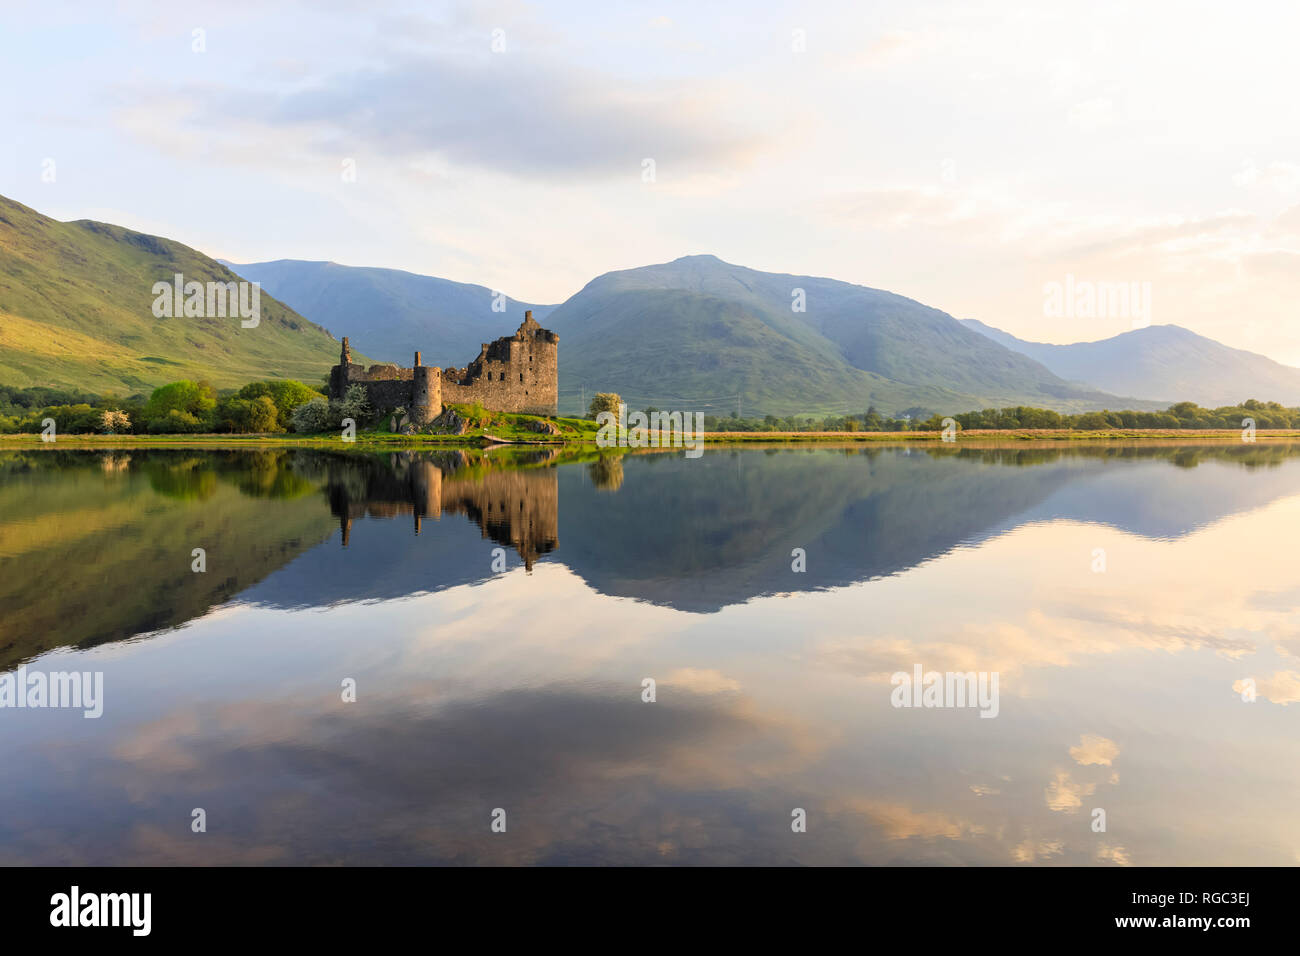 Great Britain, Scotland, Scottish Highlands, Argyll and Bute, Loch Awe, Castle Ruin Kilchurn Castle - Stock Image